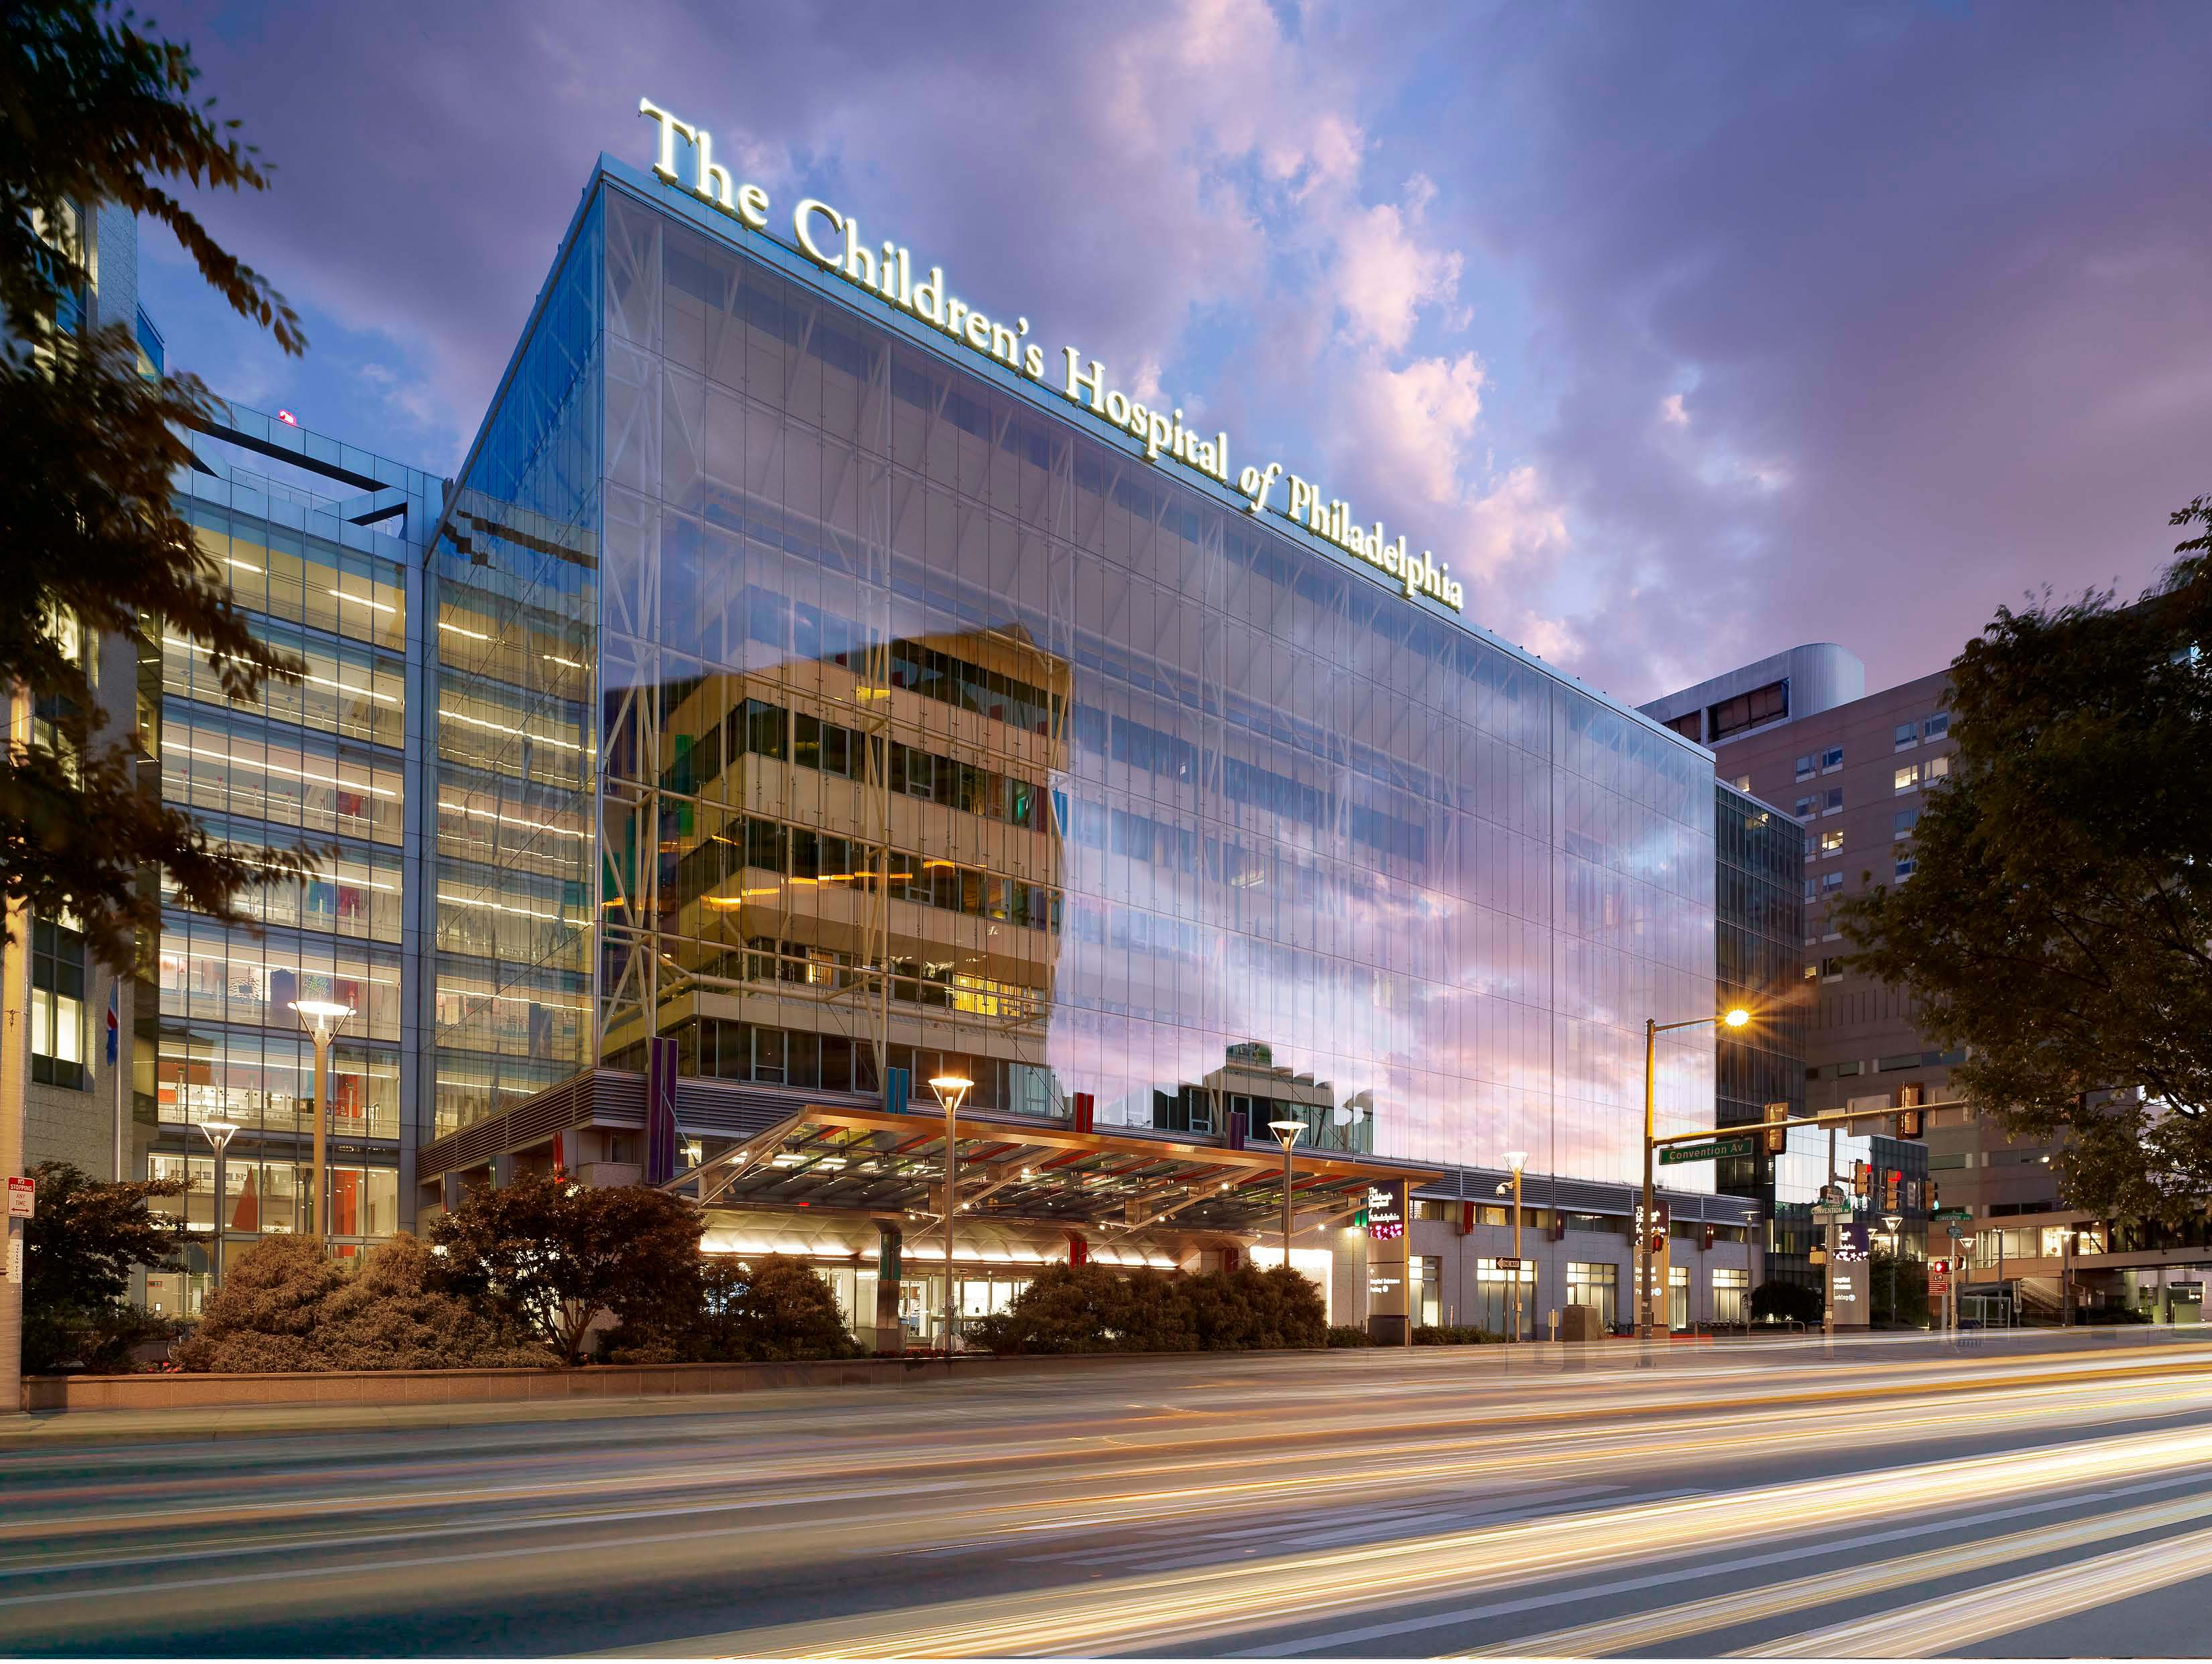 Children S Hospital Of Philadelphia Neonatal Intensive